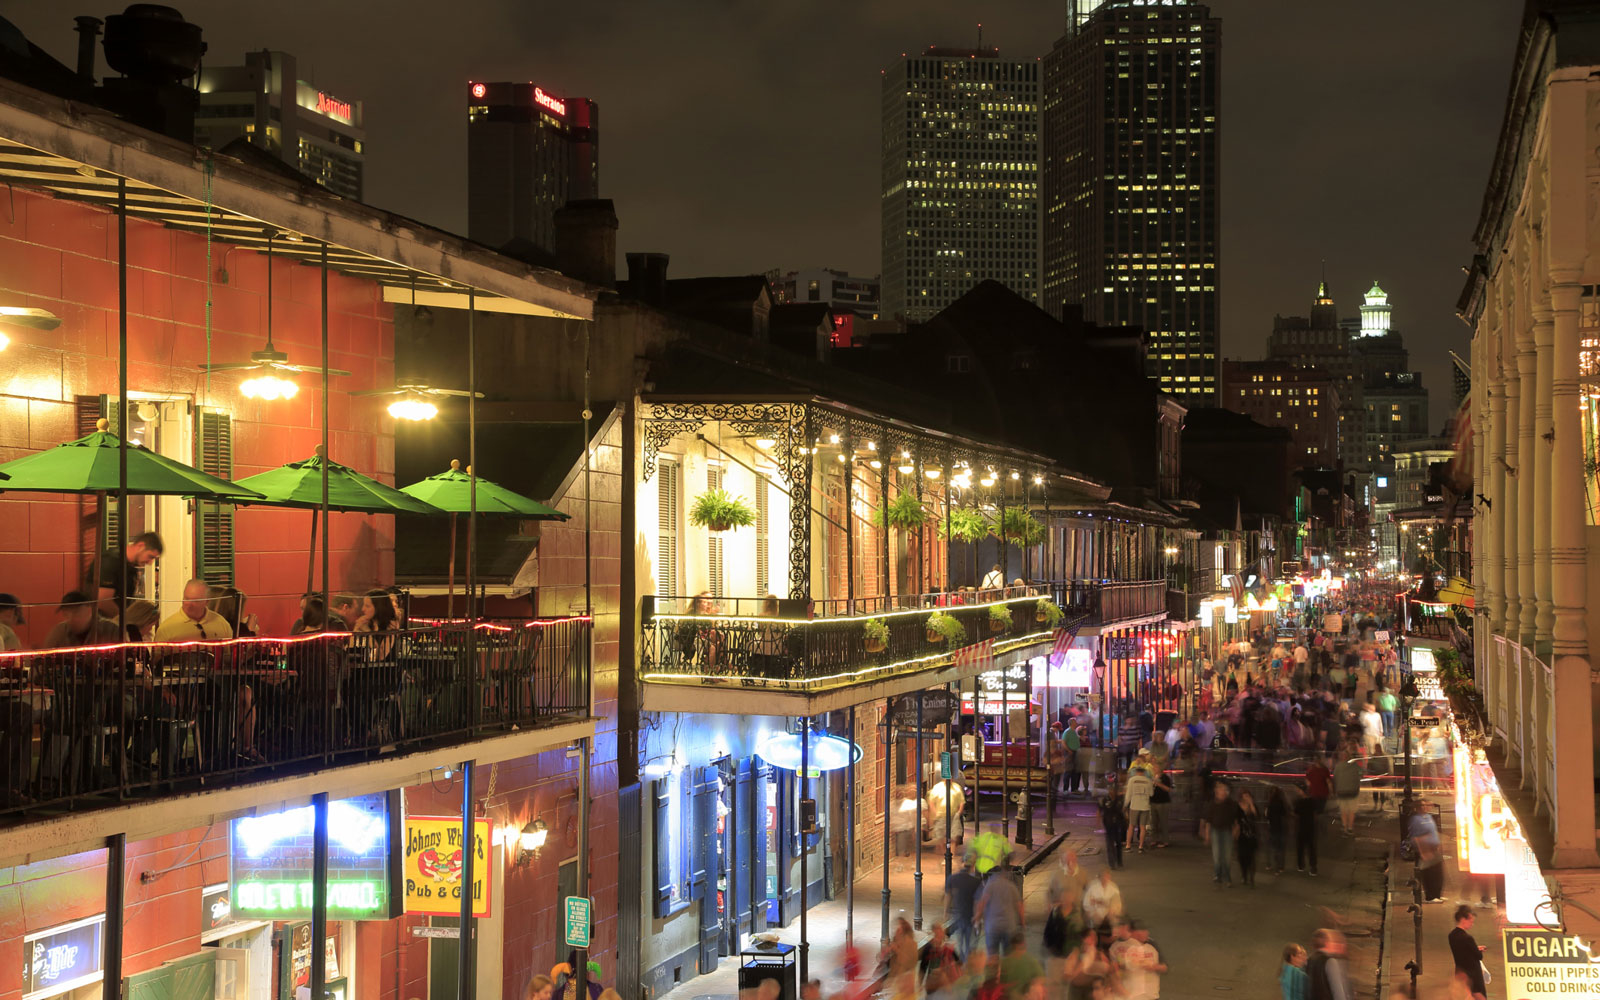 17. New Orleans, Louisiana